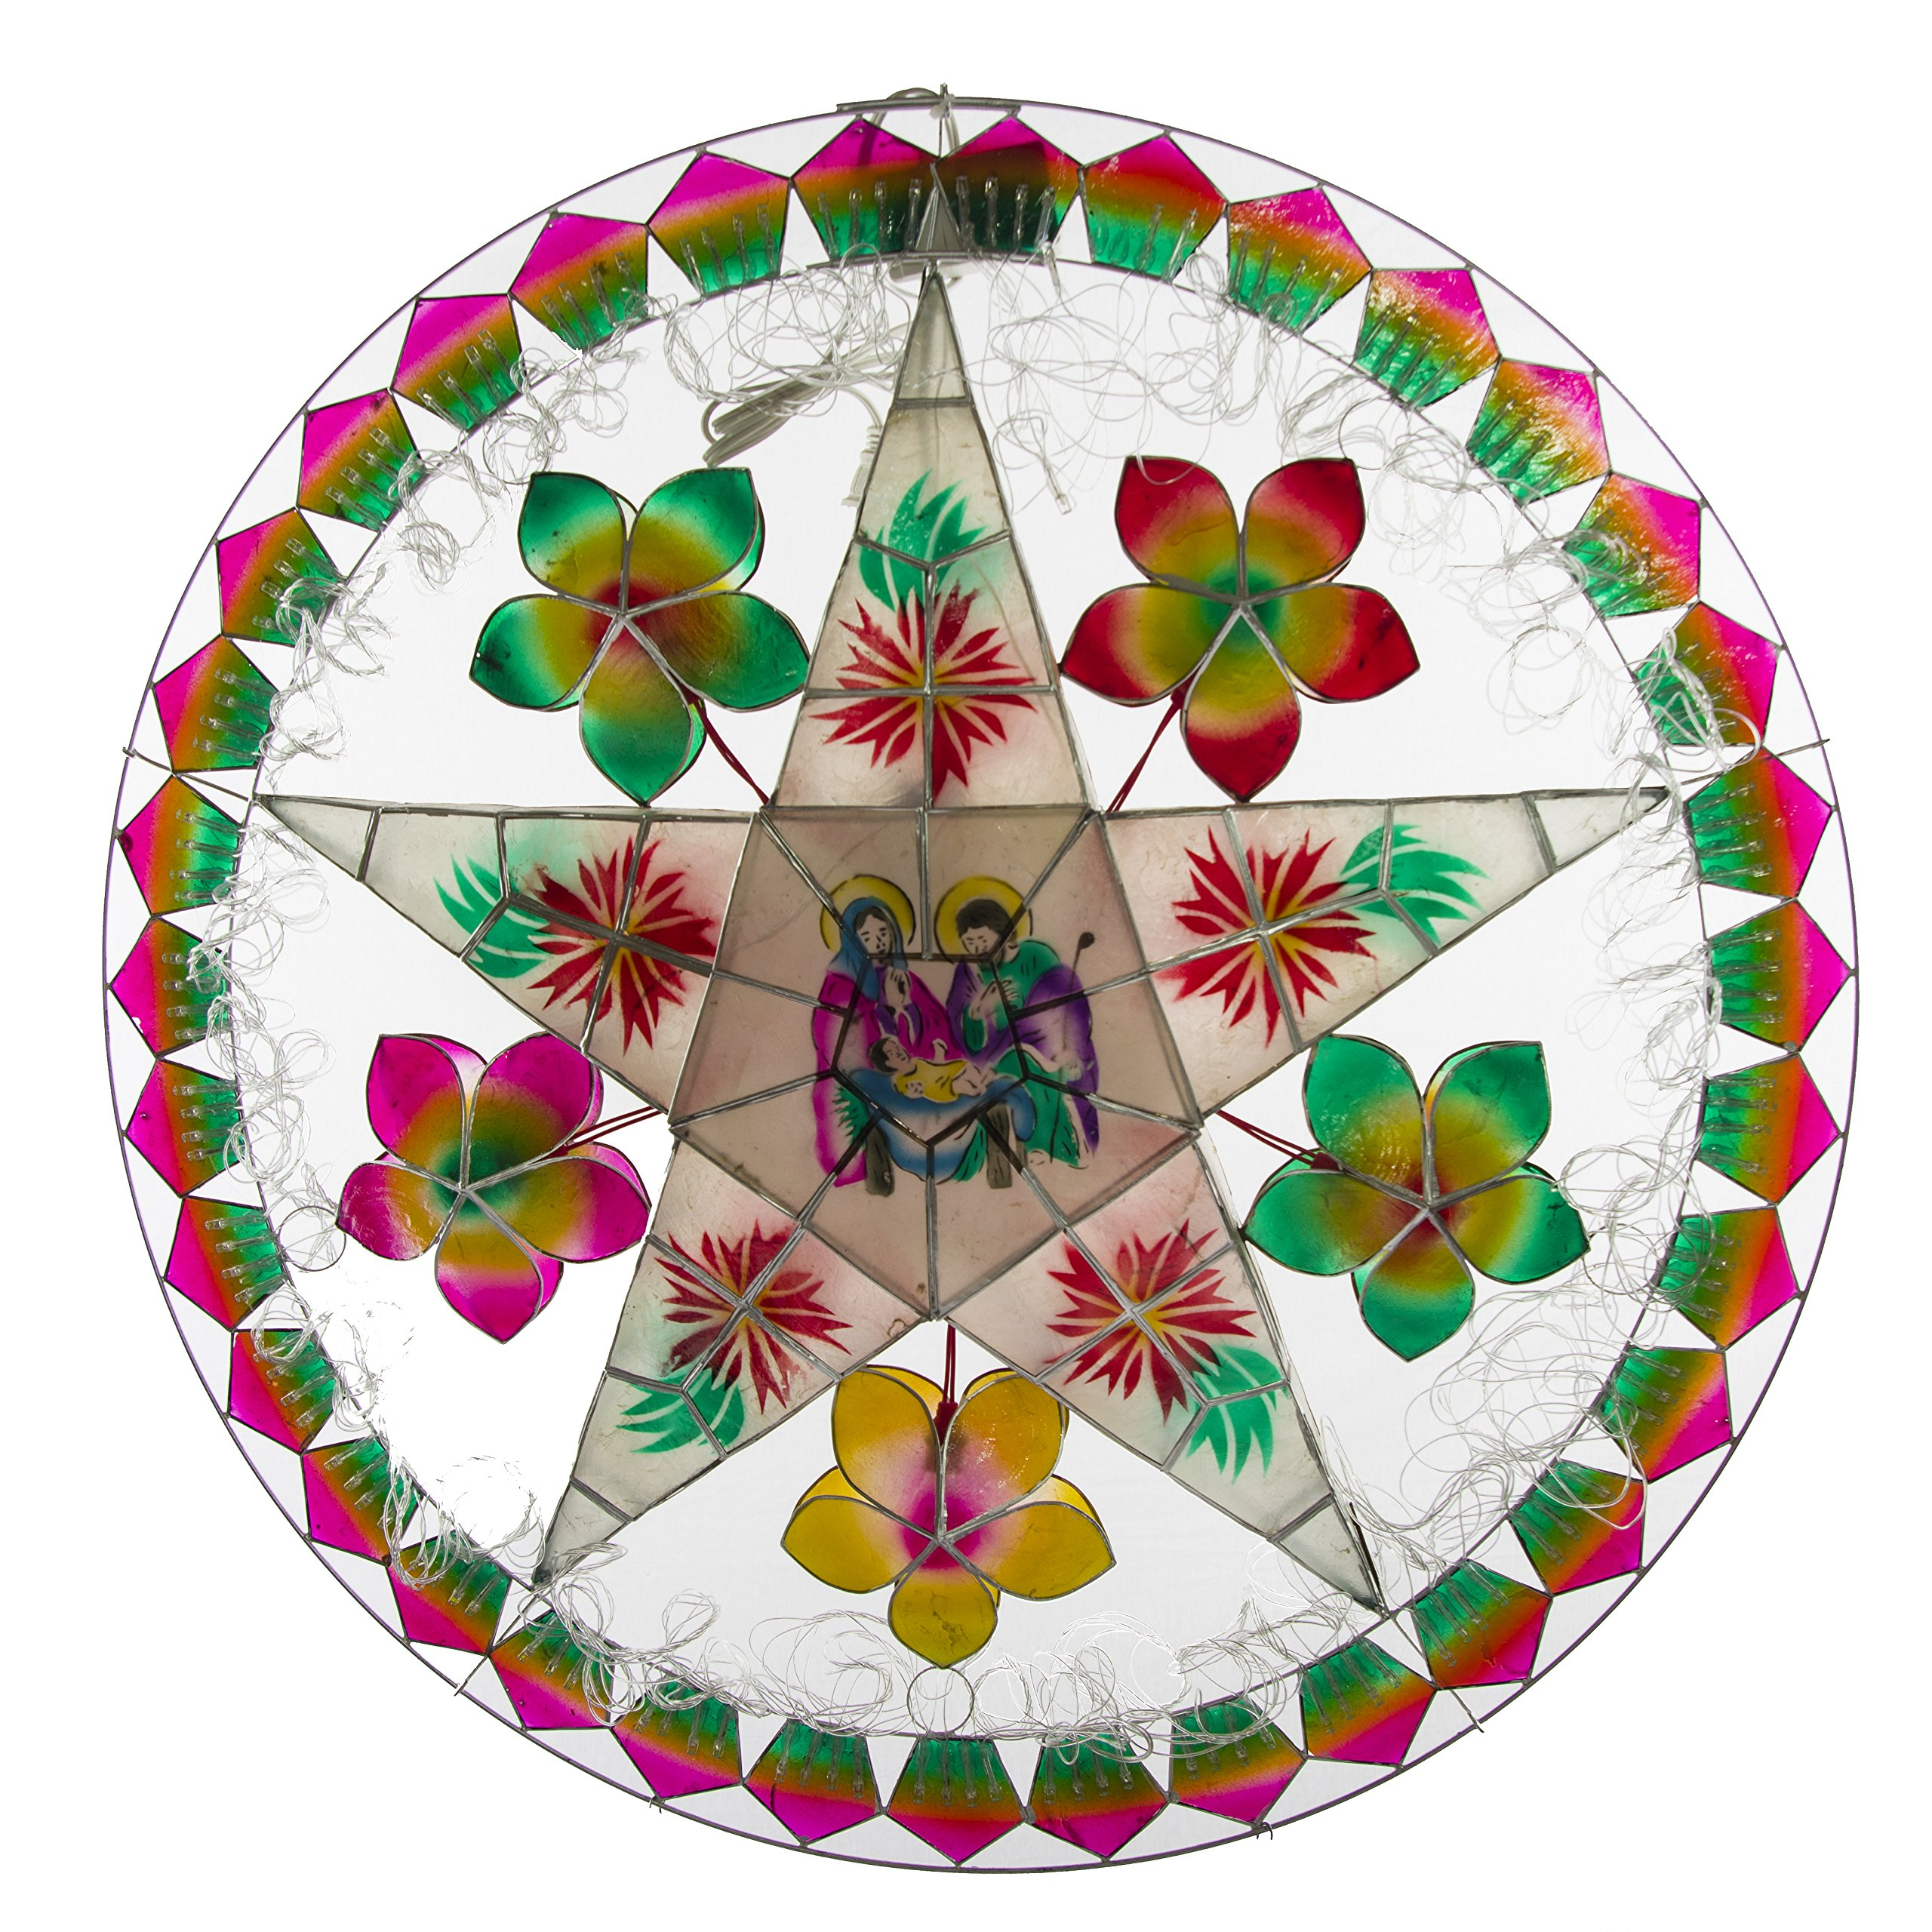 Gift Ko Handmade Nativity/Flower Parol Christmas Lantern 29 inch Multicolored